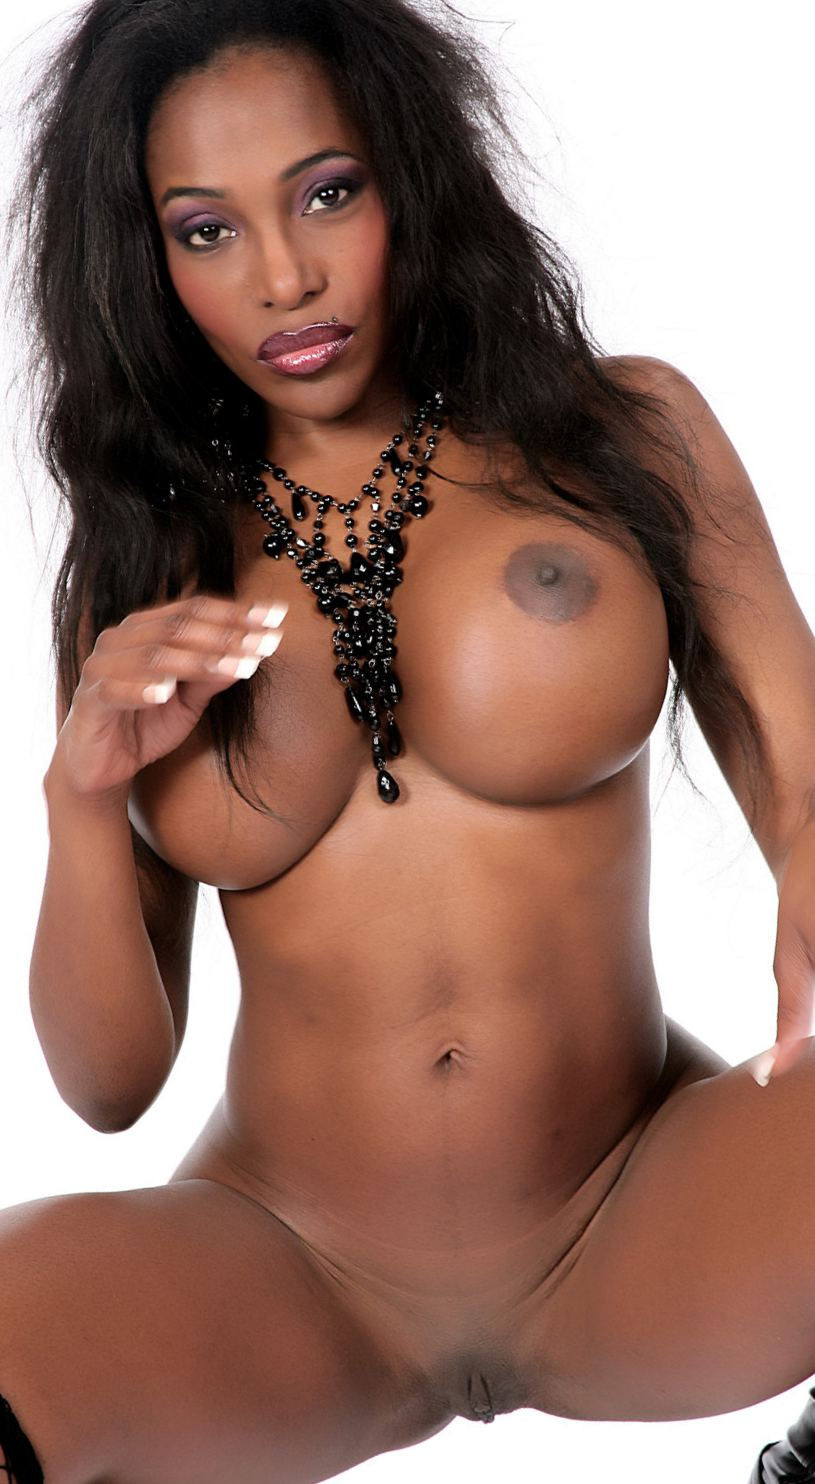 Black thick girl in pant nude